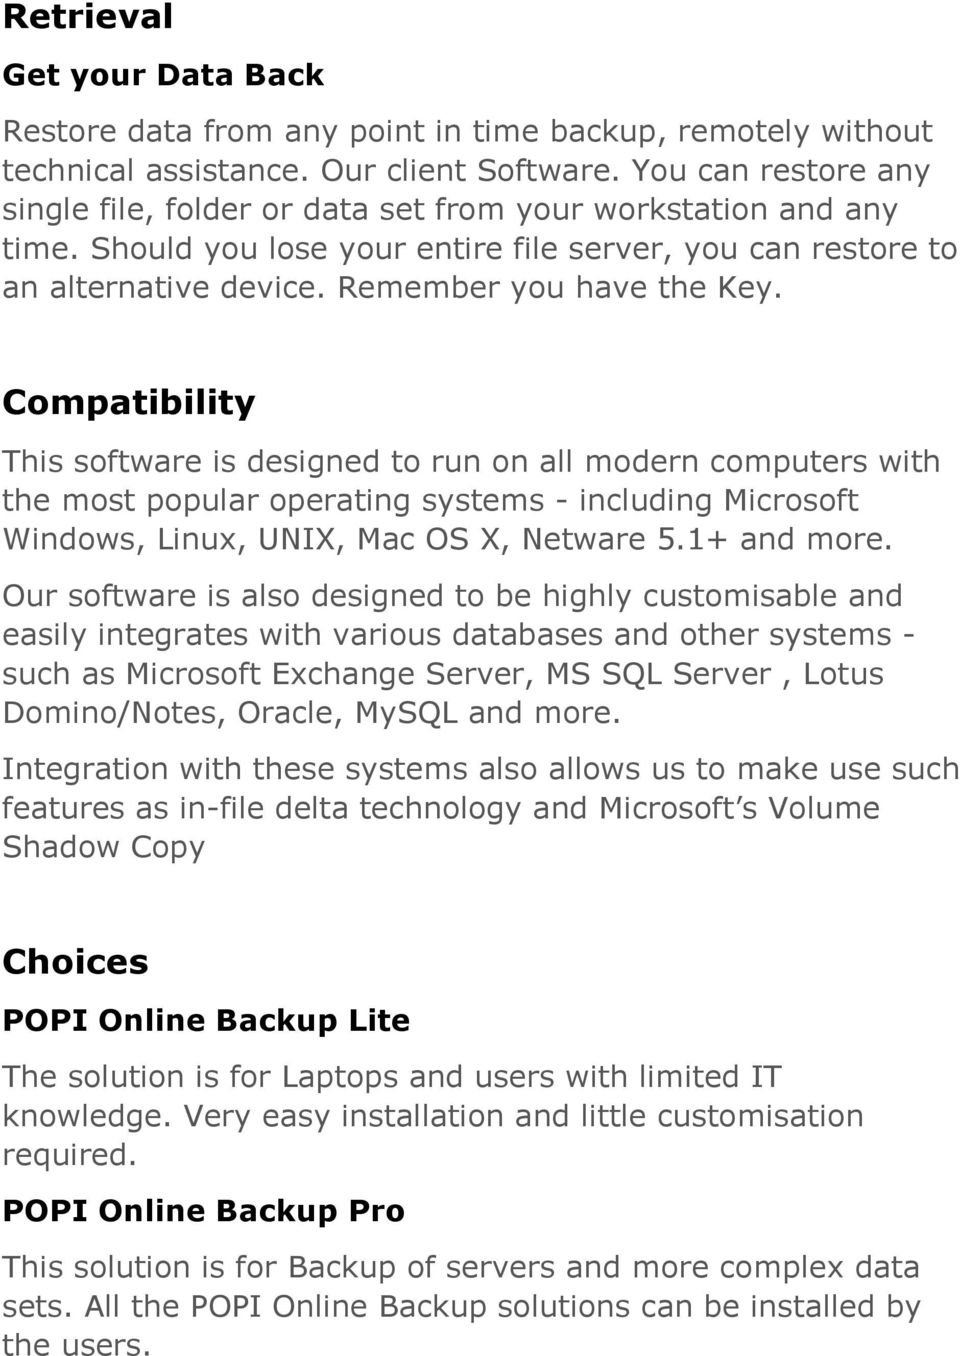 Compatibility This software is designed to run on all modern computers with the most popular operating systems - including Microsoft Windows, Linux, UNIX, Mac OS X, Netware 5.1+ and more.